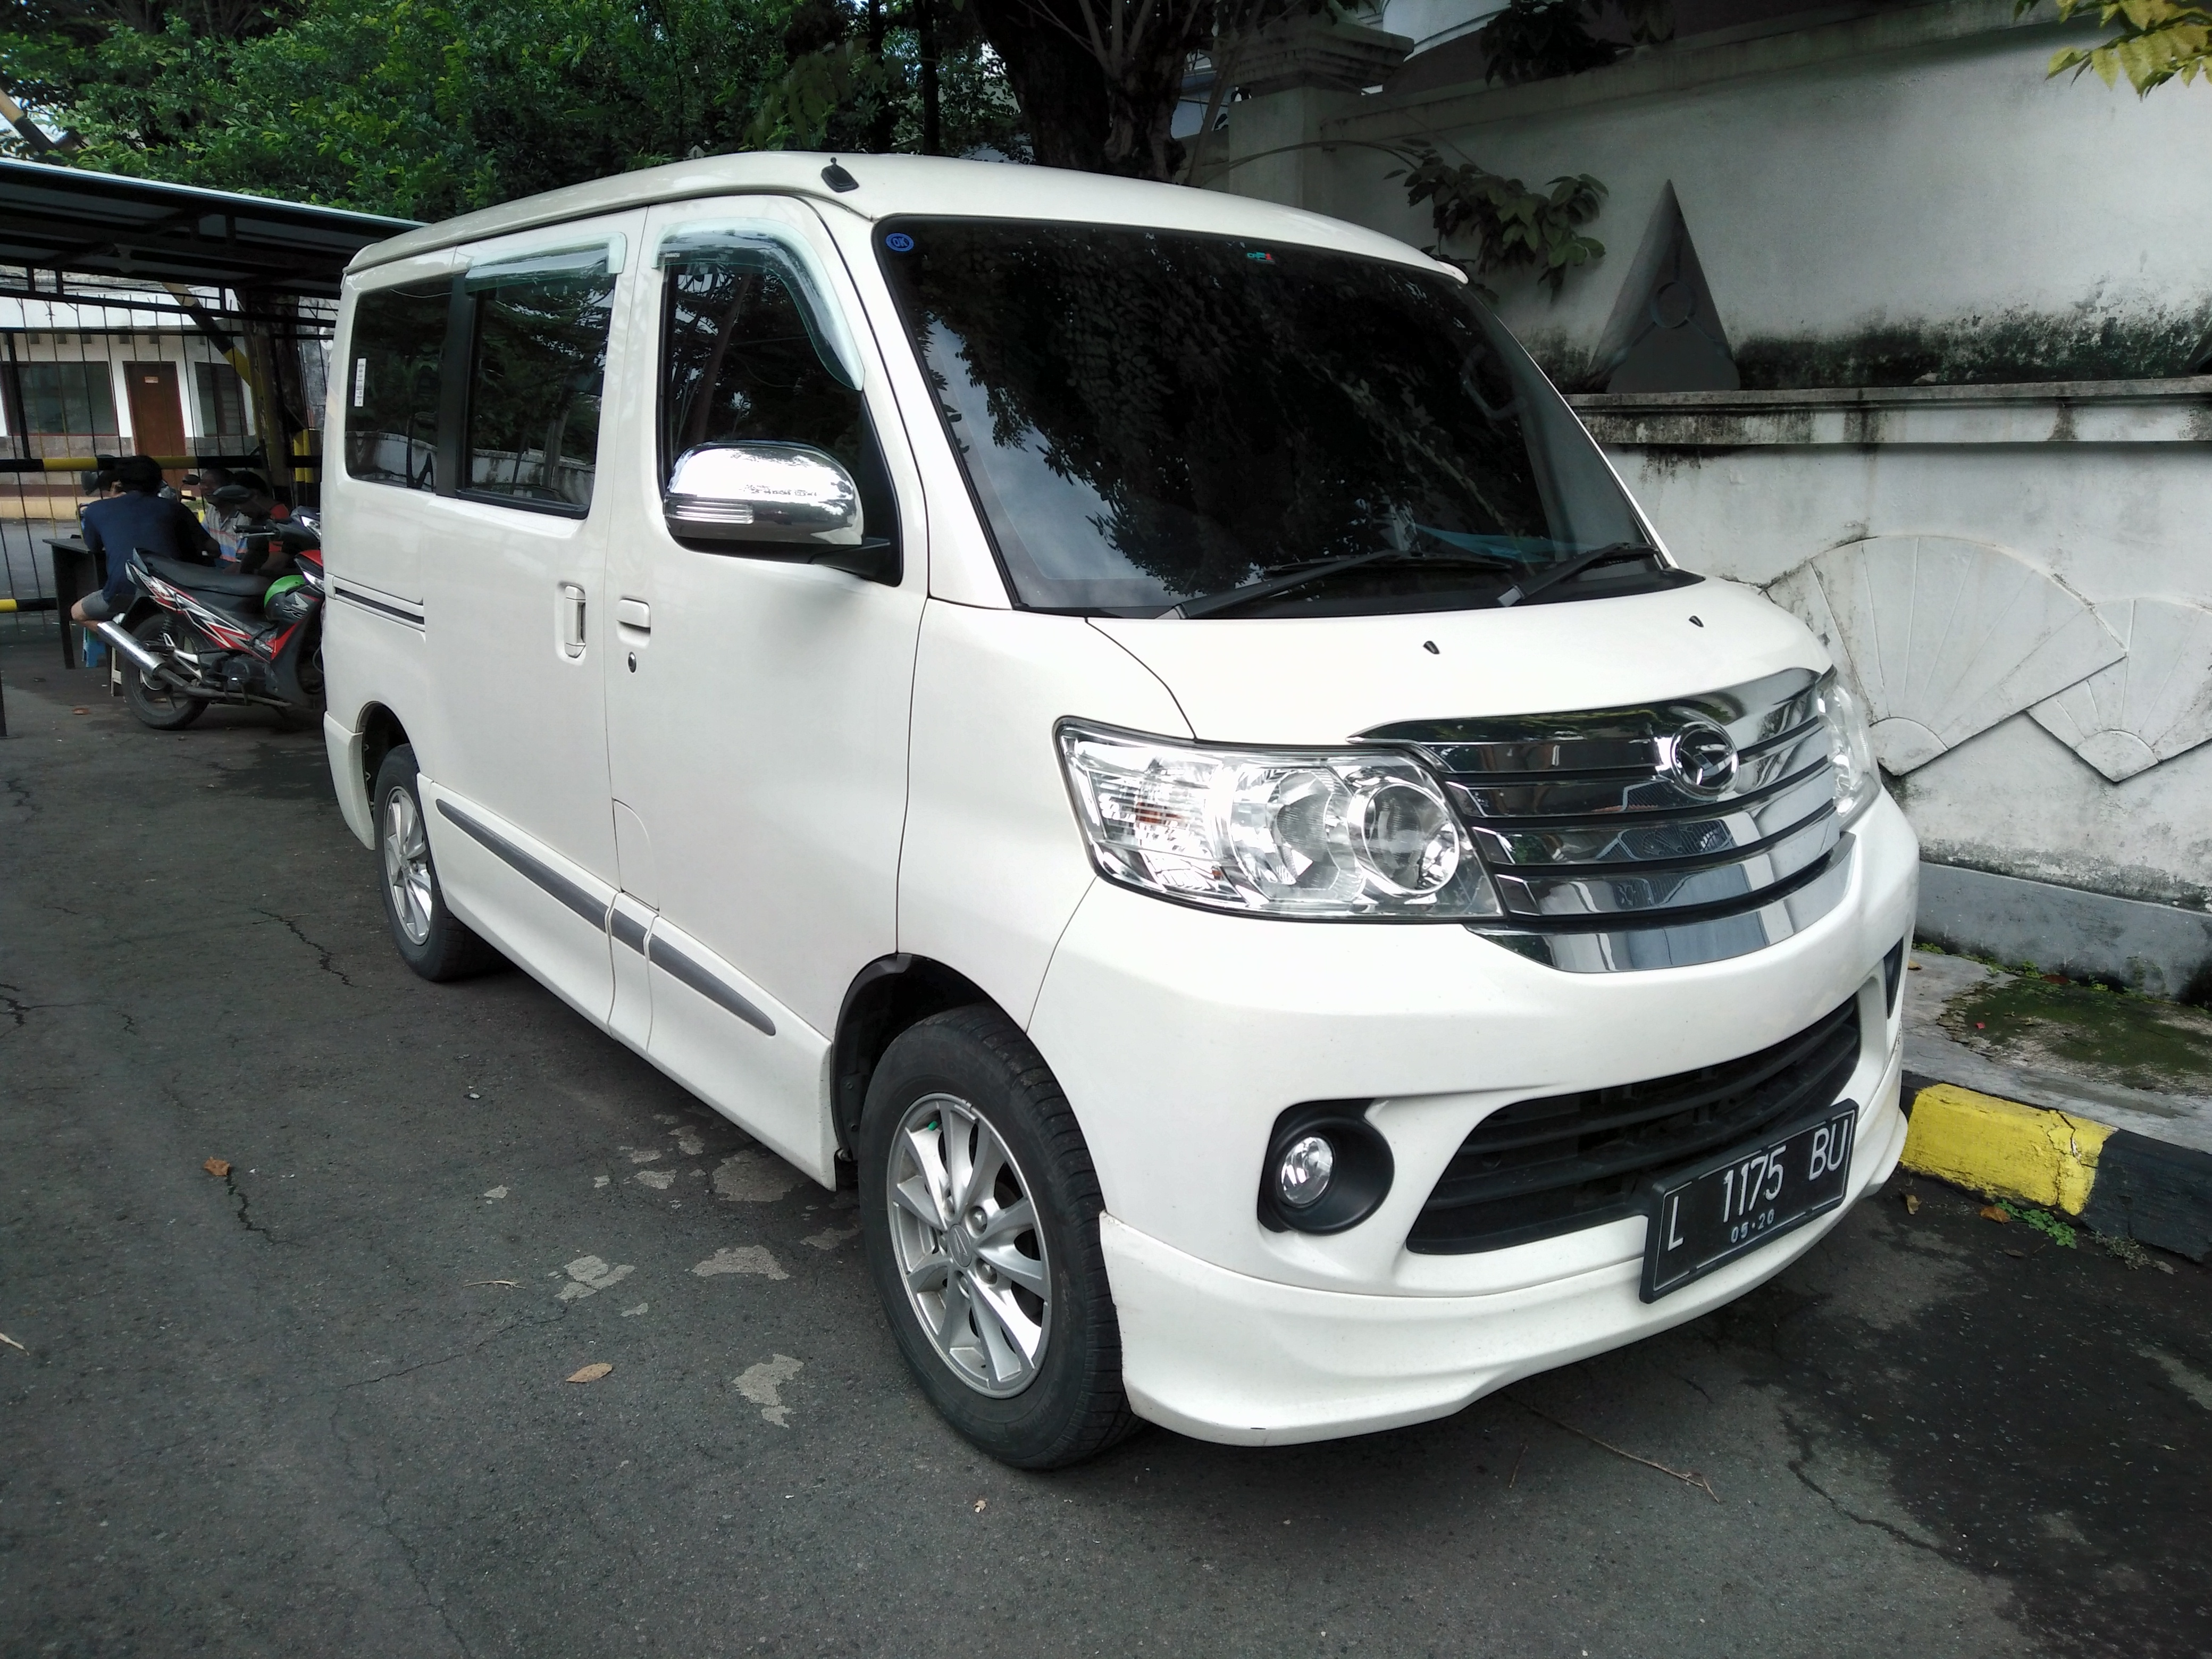 File:2015 Daihatsu Luxio 1.5 X AT (facelift) (front), West